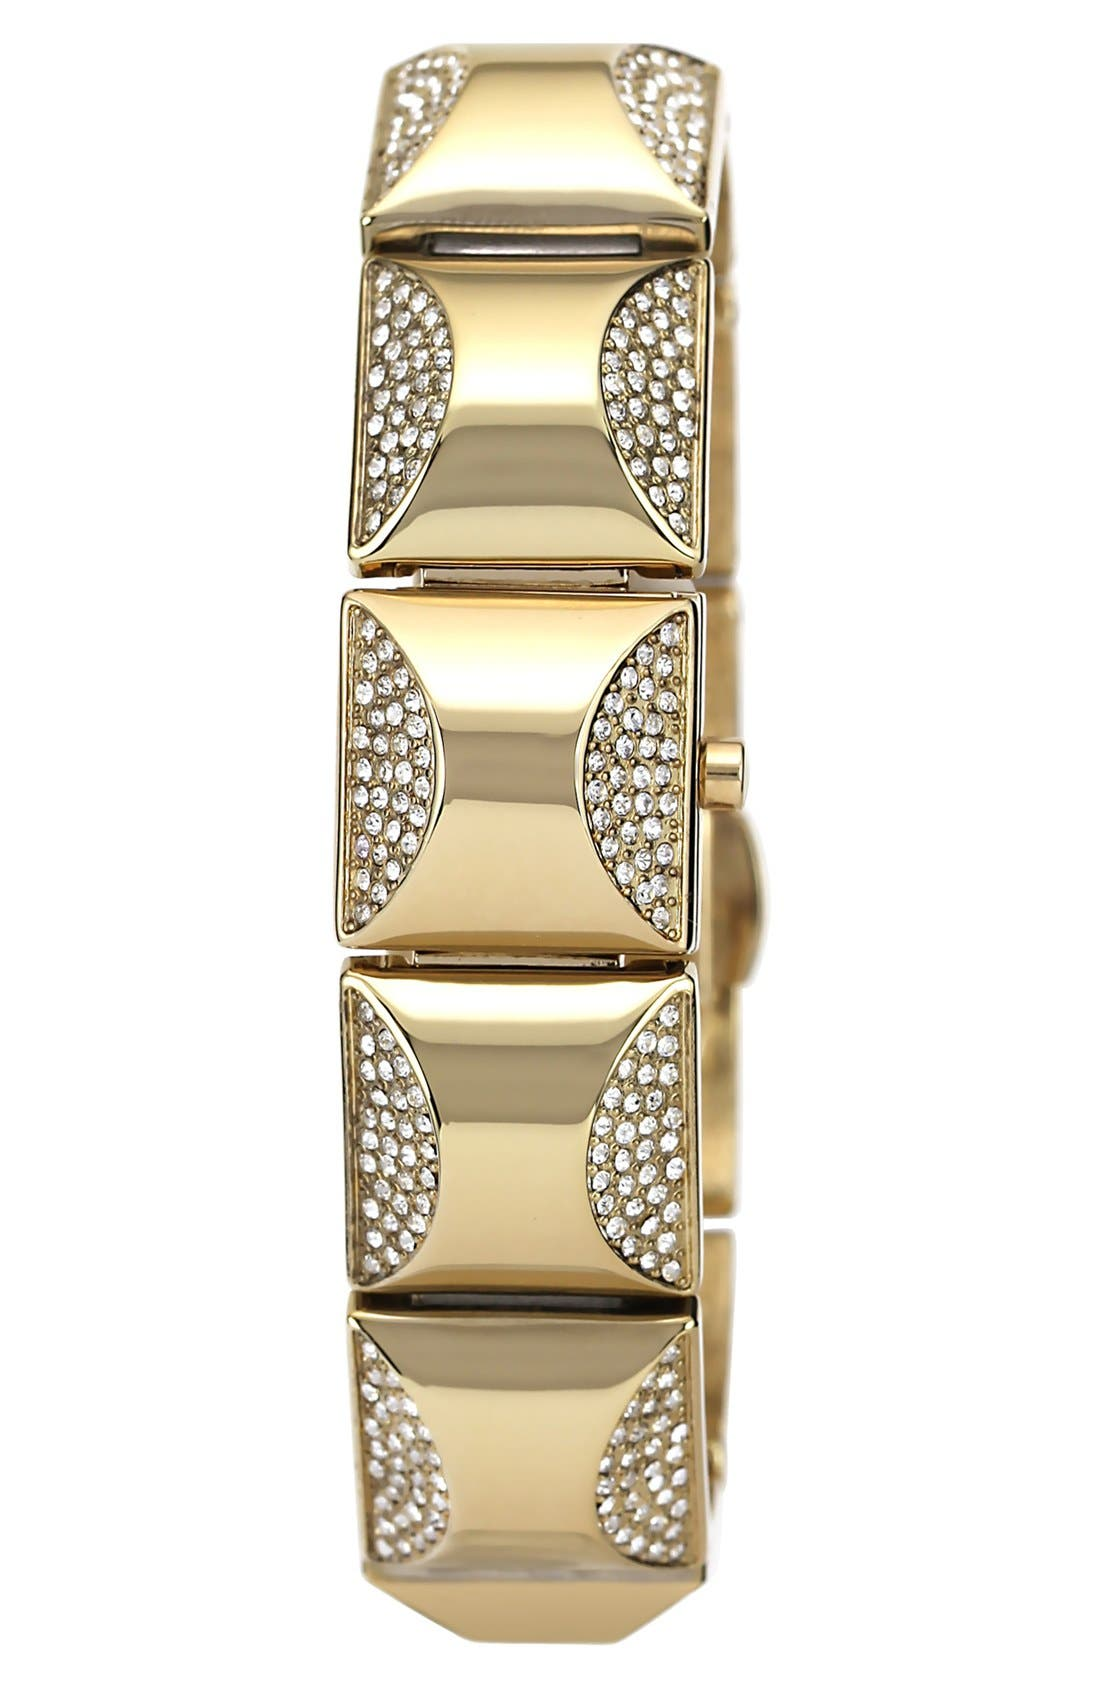 Main Image - Vince Camuto Covered Case Crystal Accent Bracelet Watch, 17mm